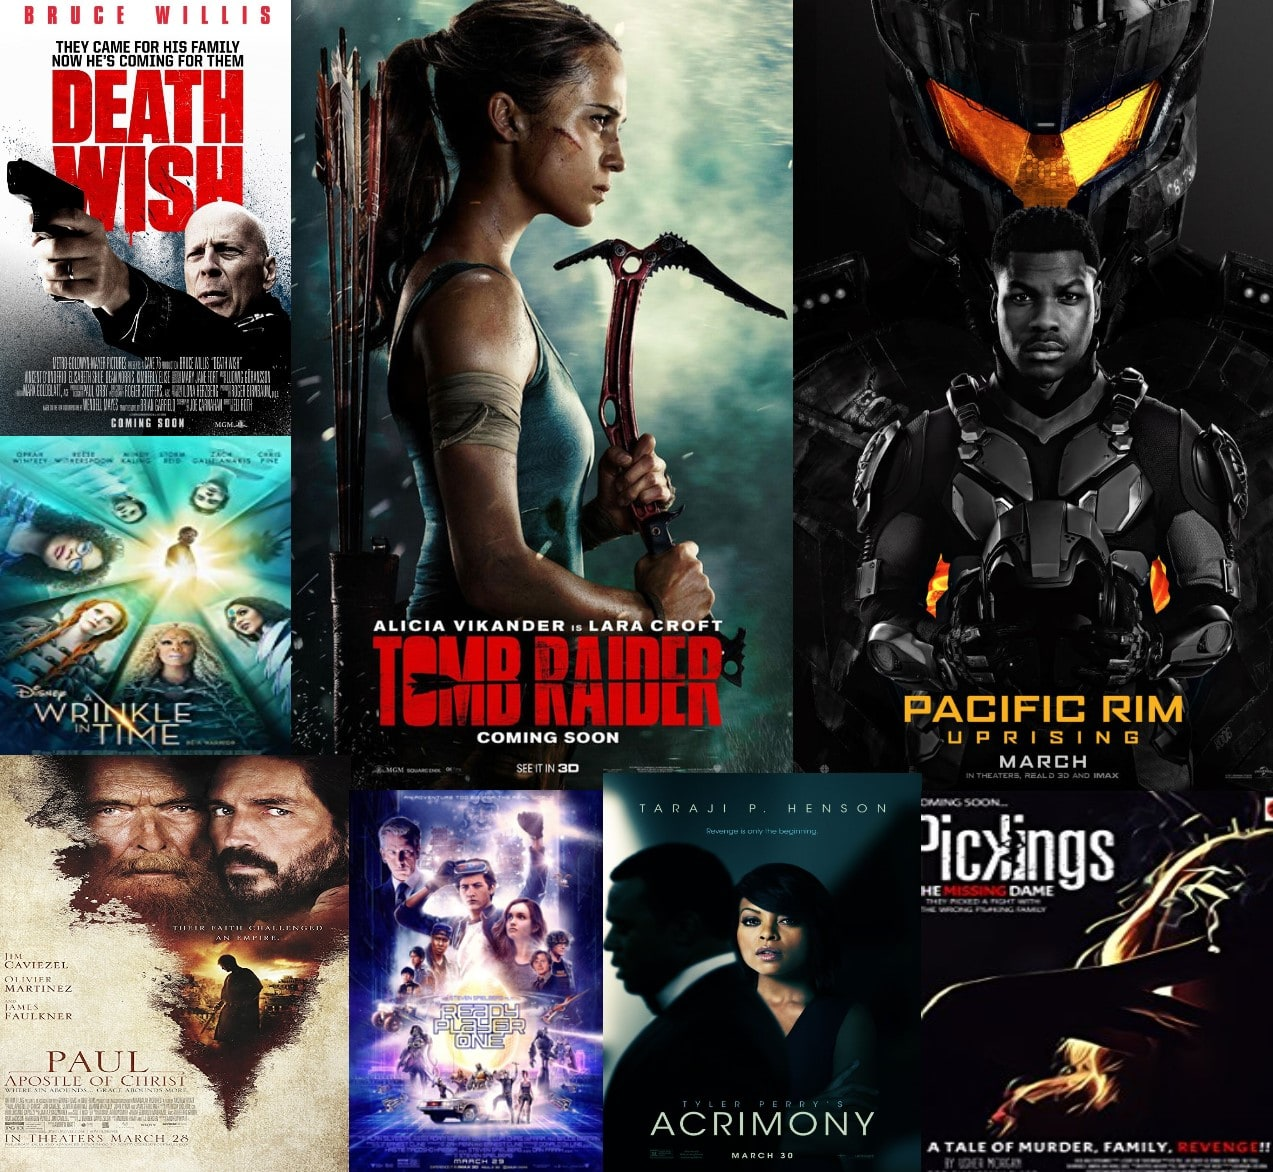 Movies to look forward to in March 2018